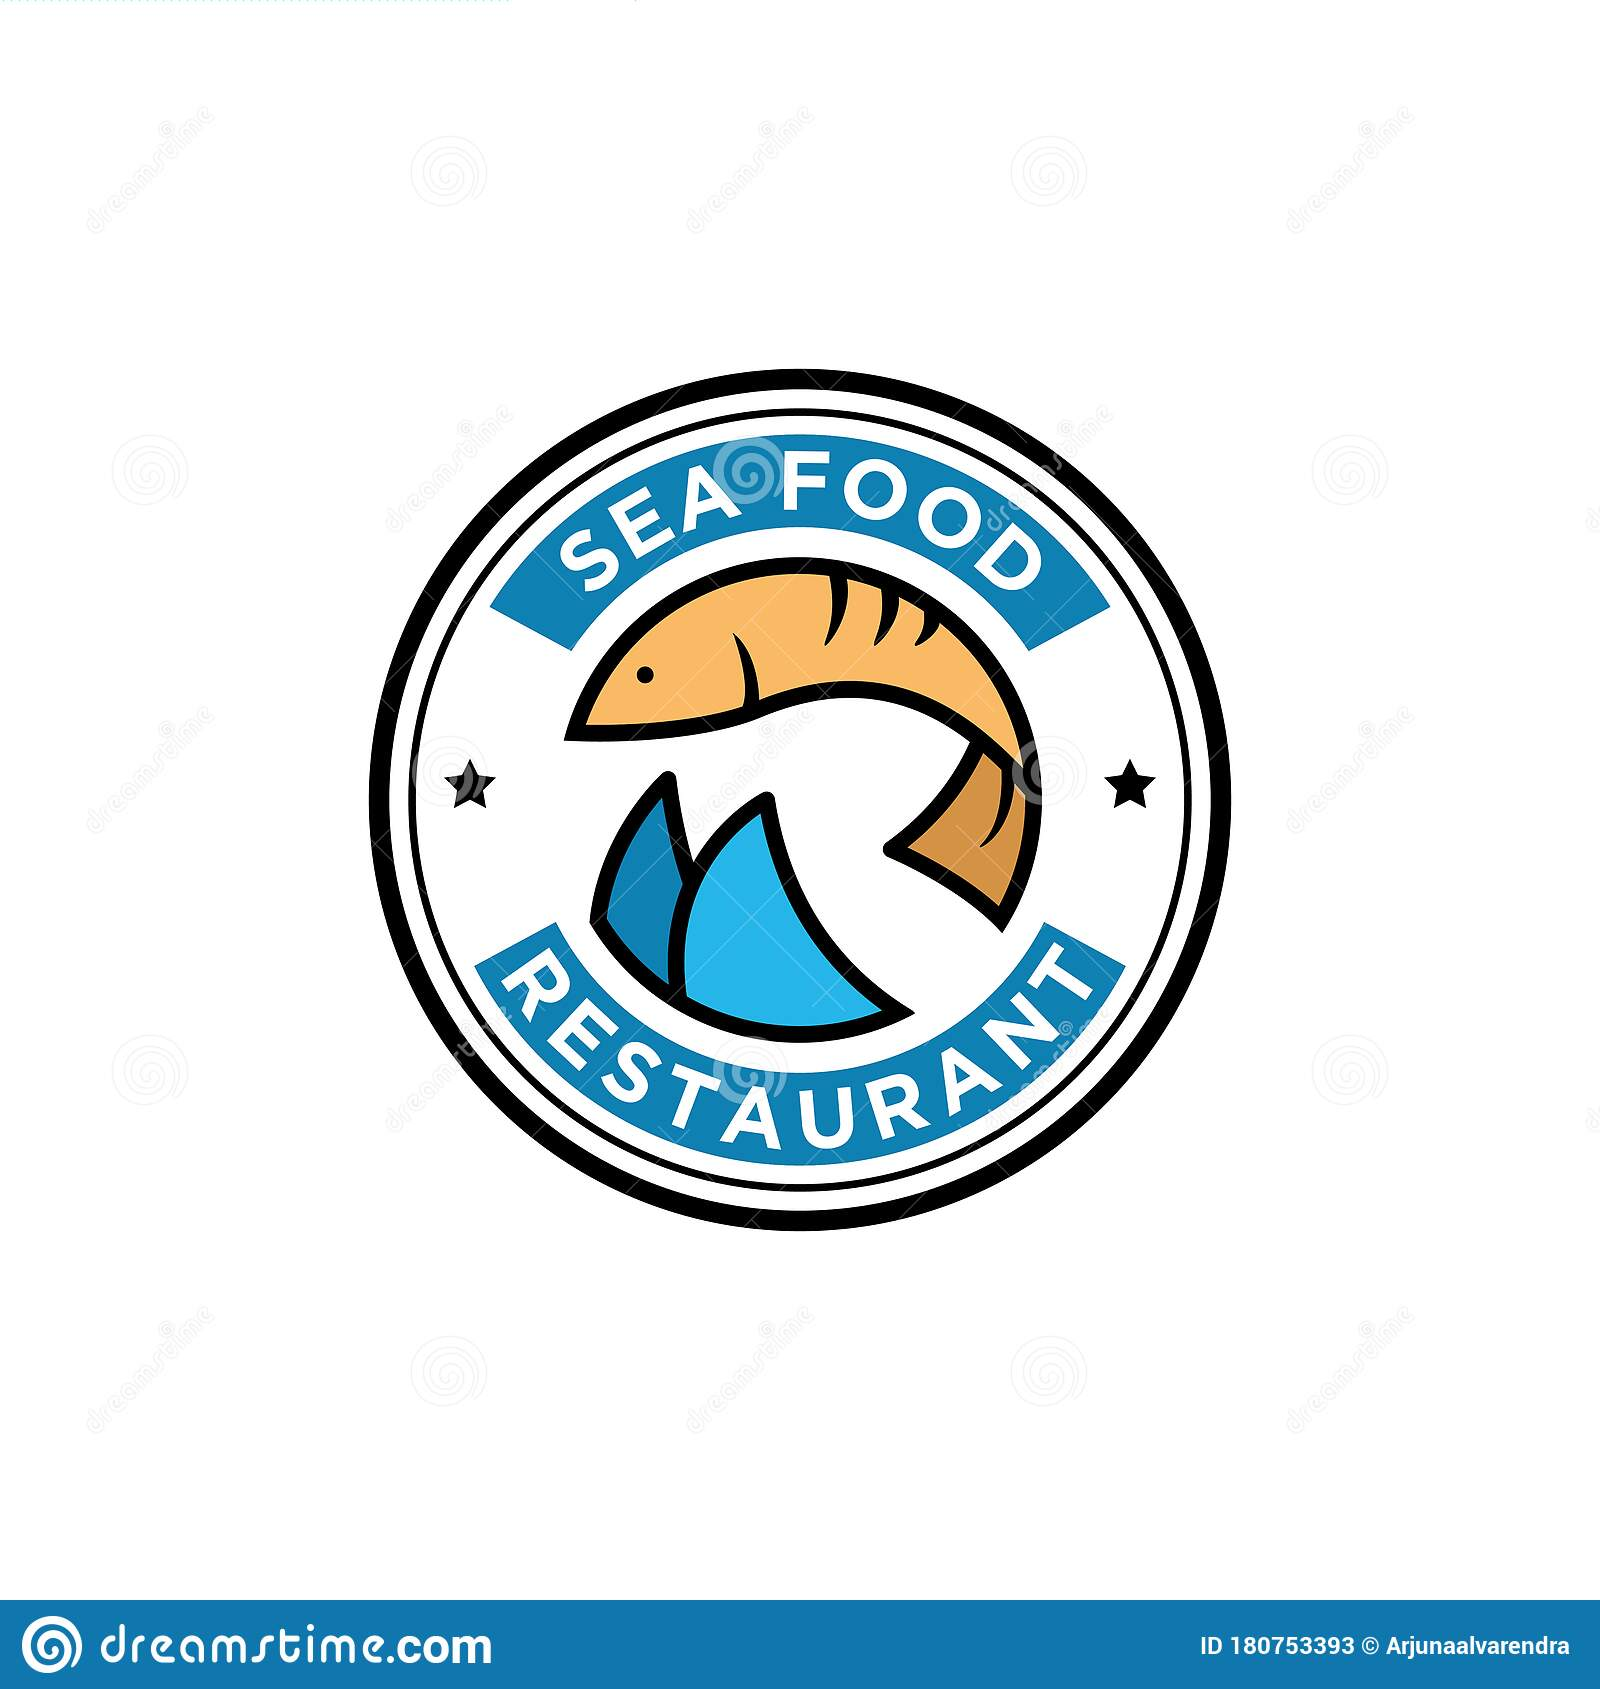 Fresh Fish Seafood Restaurant Logo Design Food And Beverages Vector Illustration Stock Vector Illustration Of Delicious Cook 180753393